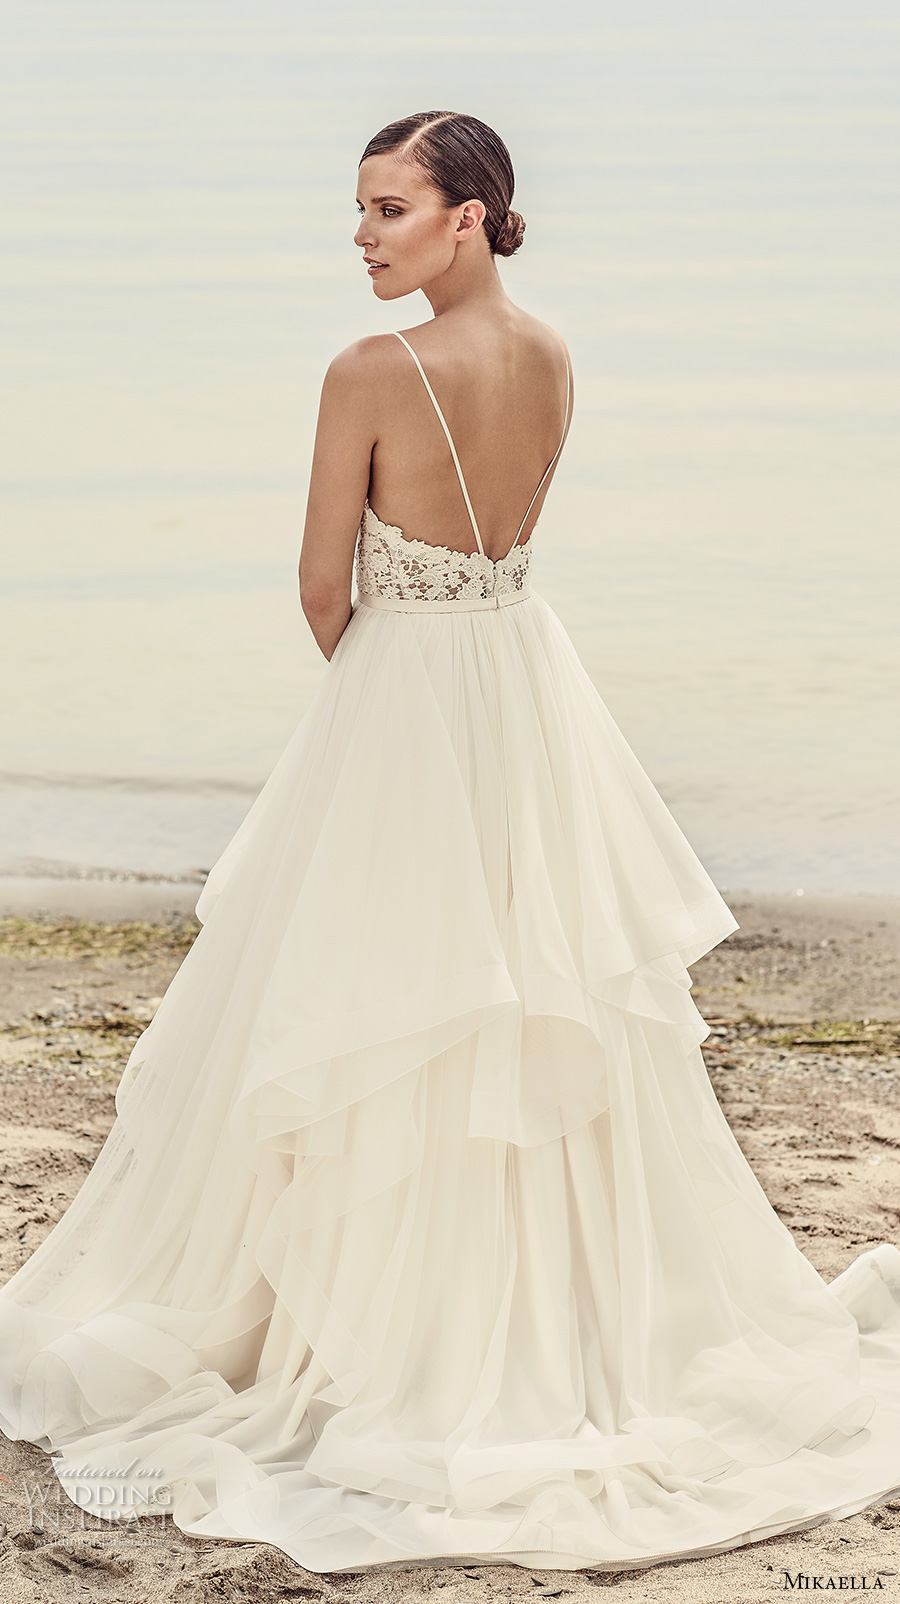 mikaella spring 2017 bridal spagetti strap sweetheart neckline heavily embellished bodice layered skirt romantic a line wedding dress open low back sweep train (2101) bv